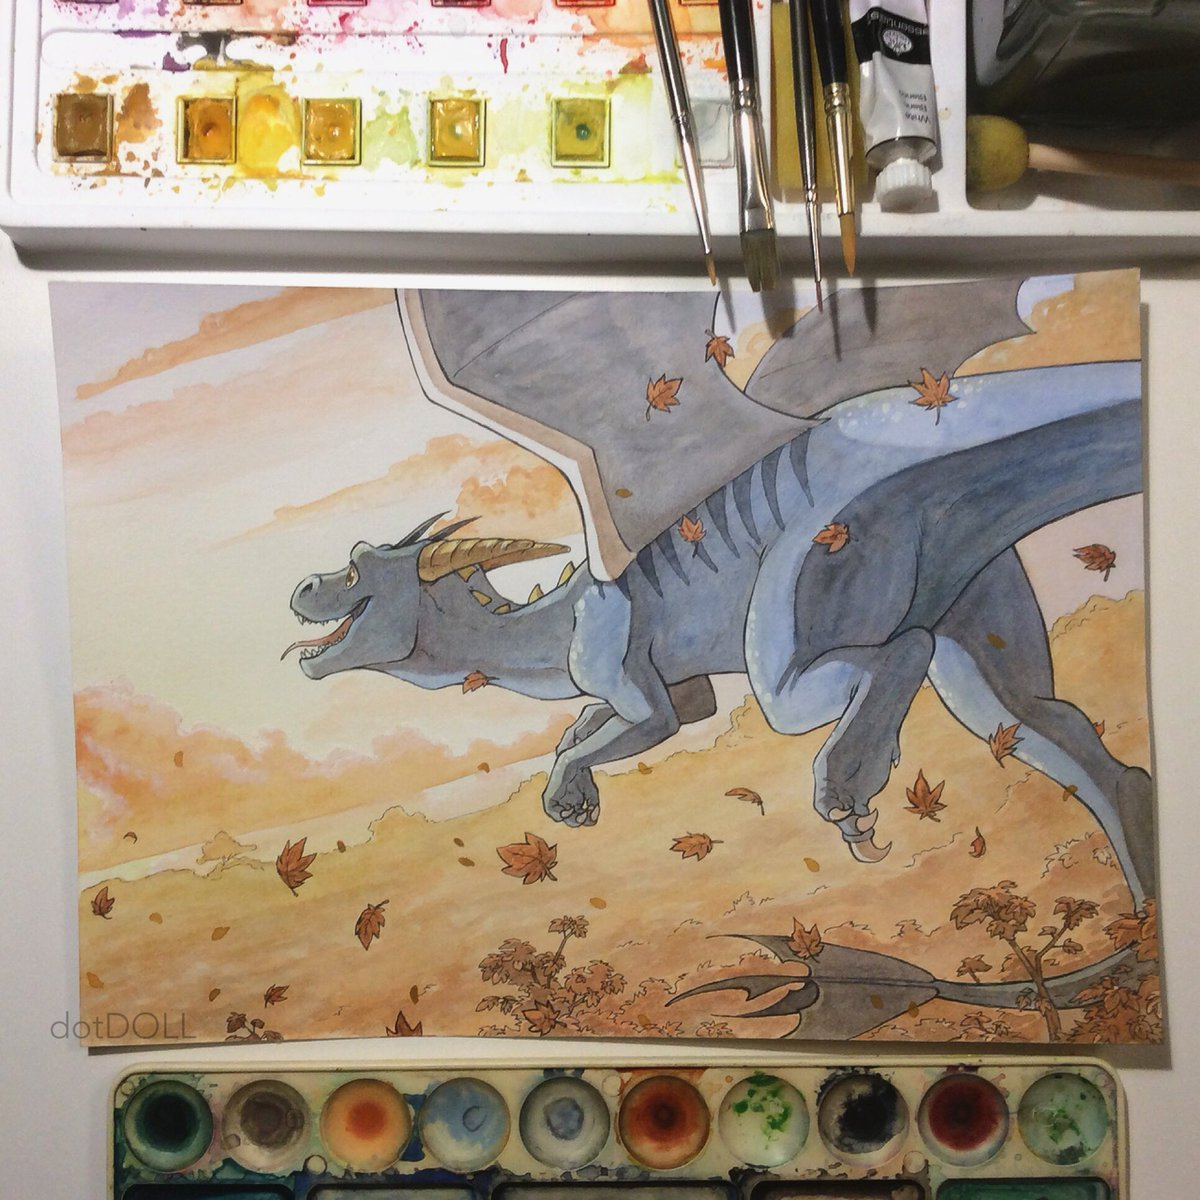 elizabeth rose best on twitter dragon x raptor oc for commission number 4 dinosaur dragon watercolour twitter